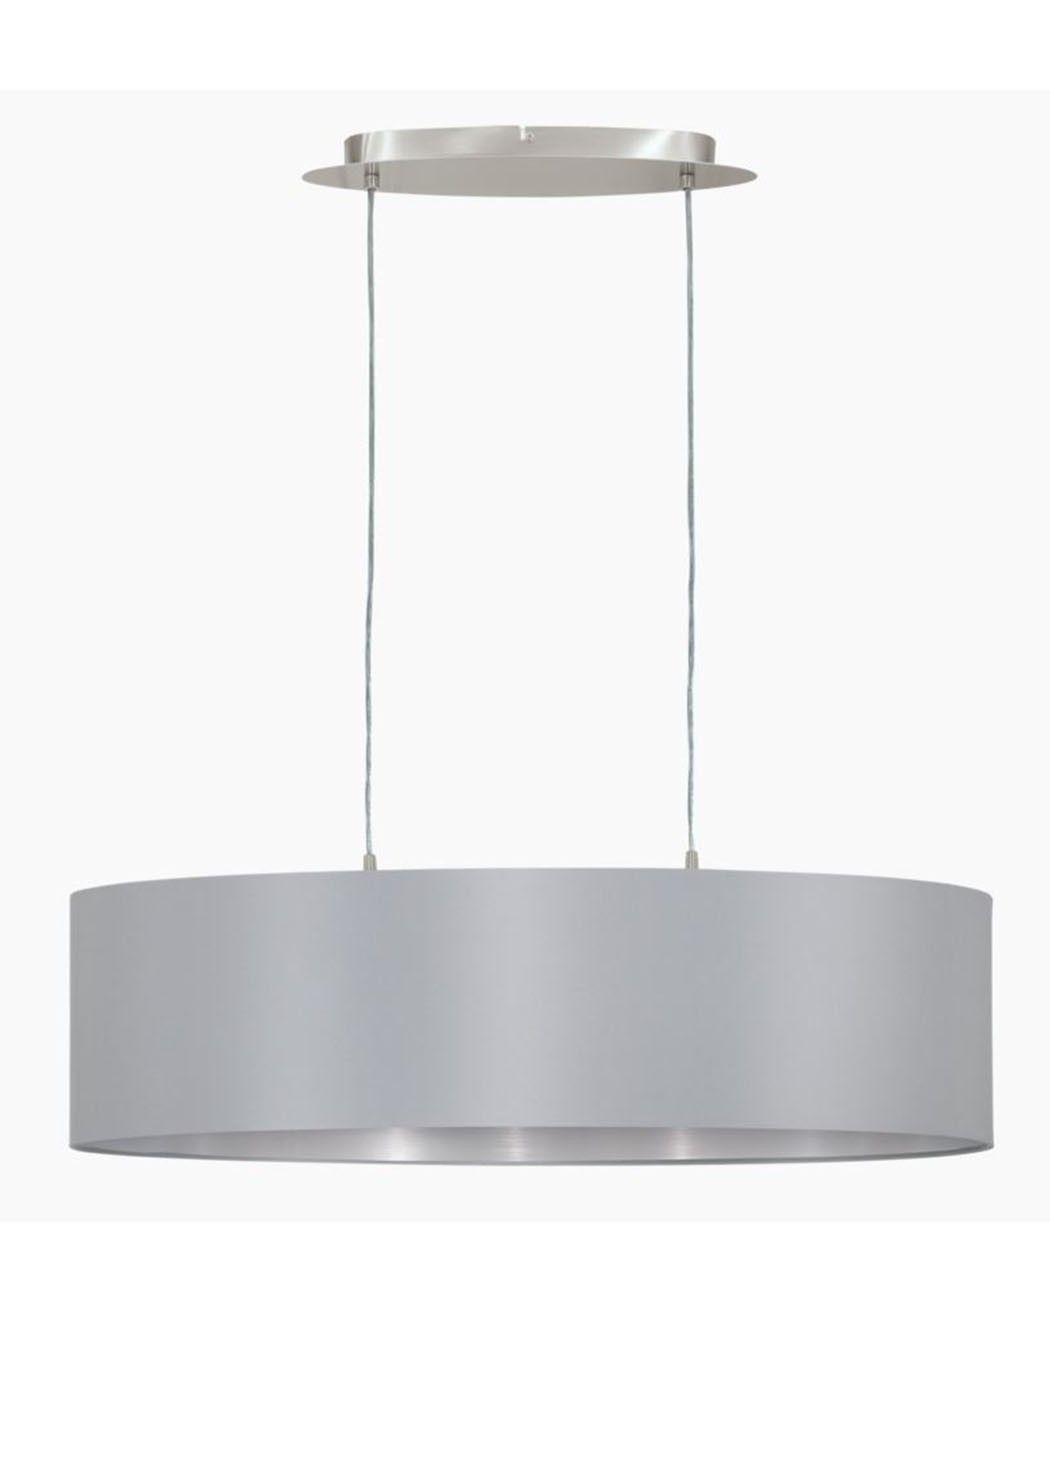 Eglo maserlo 2 light ceiling light grey ceiling lights ceilings eglo maserlo 2 light ceiling light contemporary pendant lightspendant arubaitofo Gallery